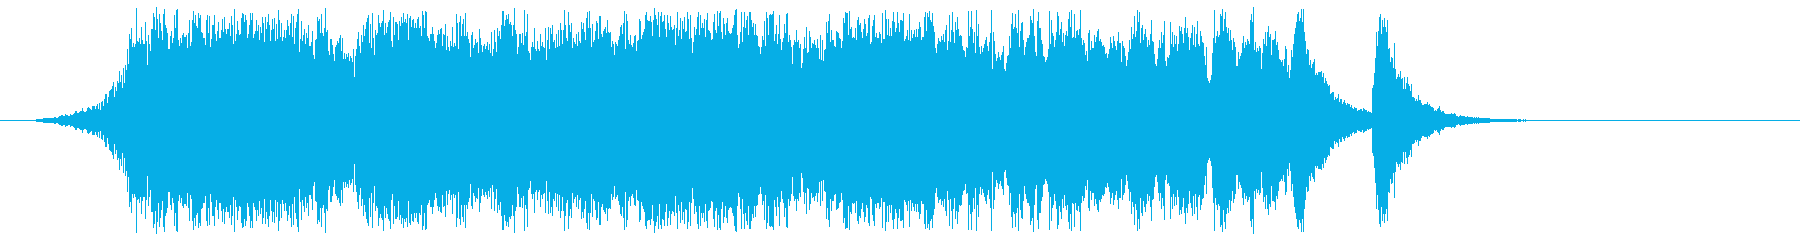 Fanfare and Orchestra's reproduced waveform